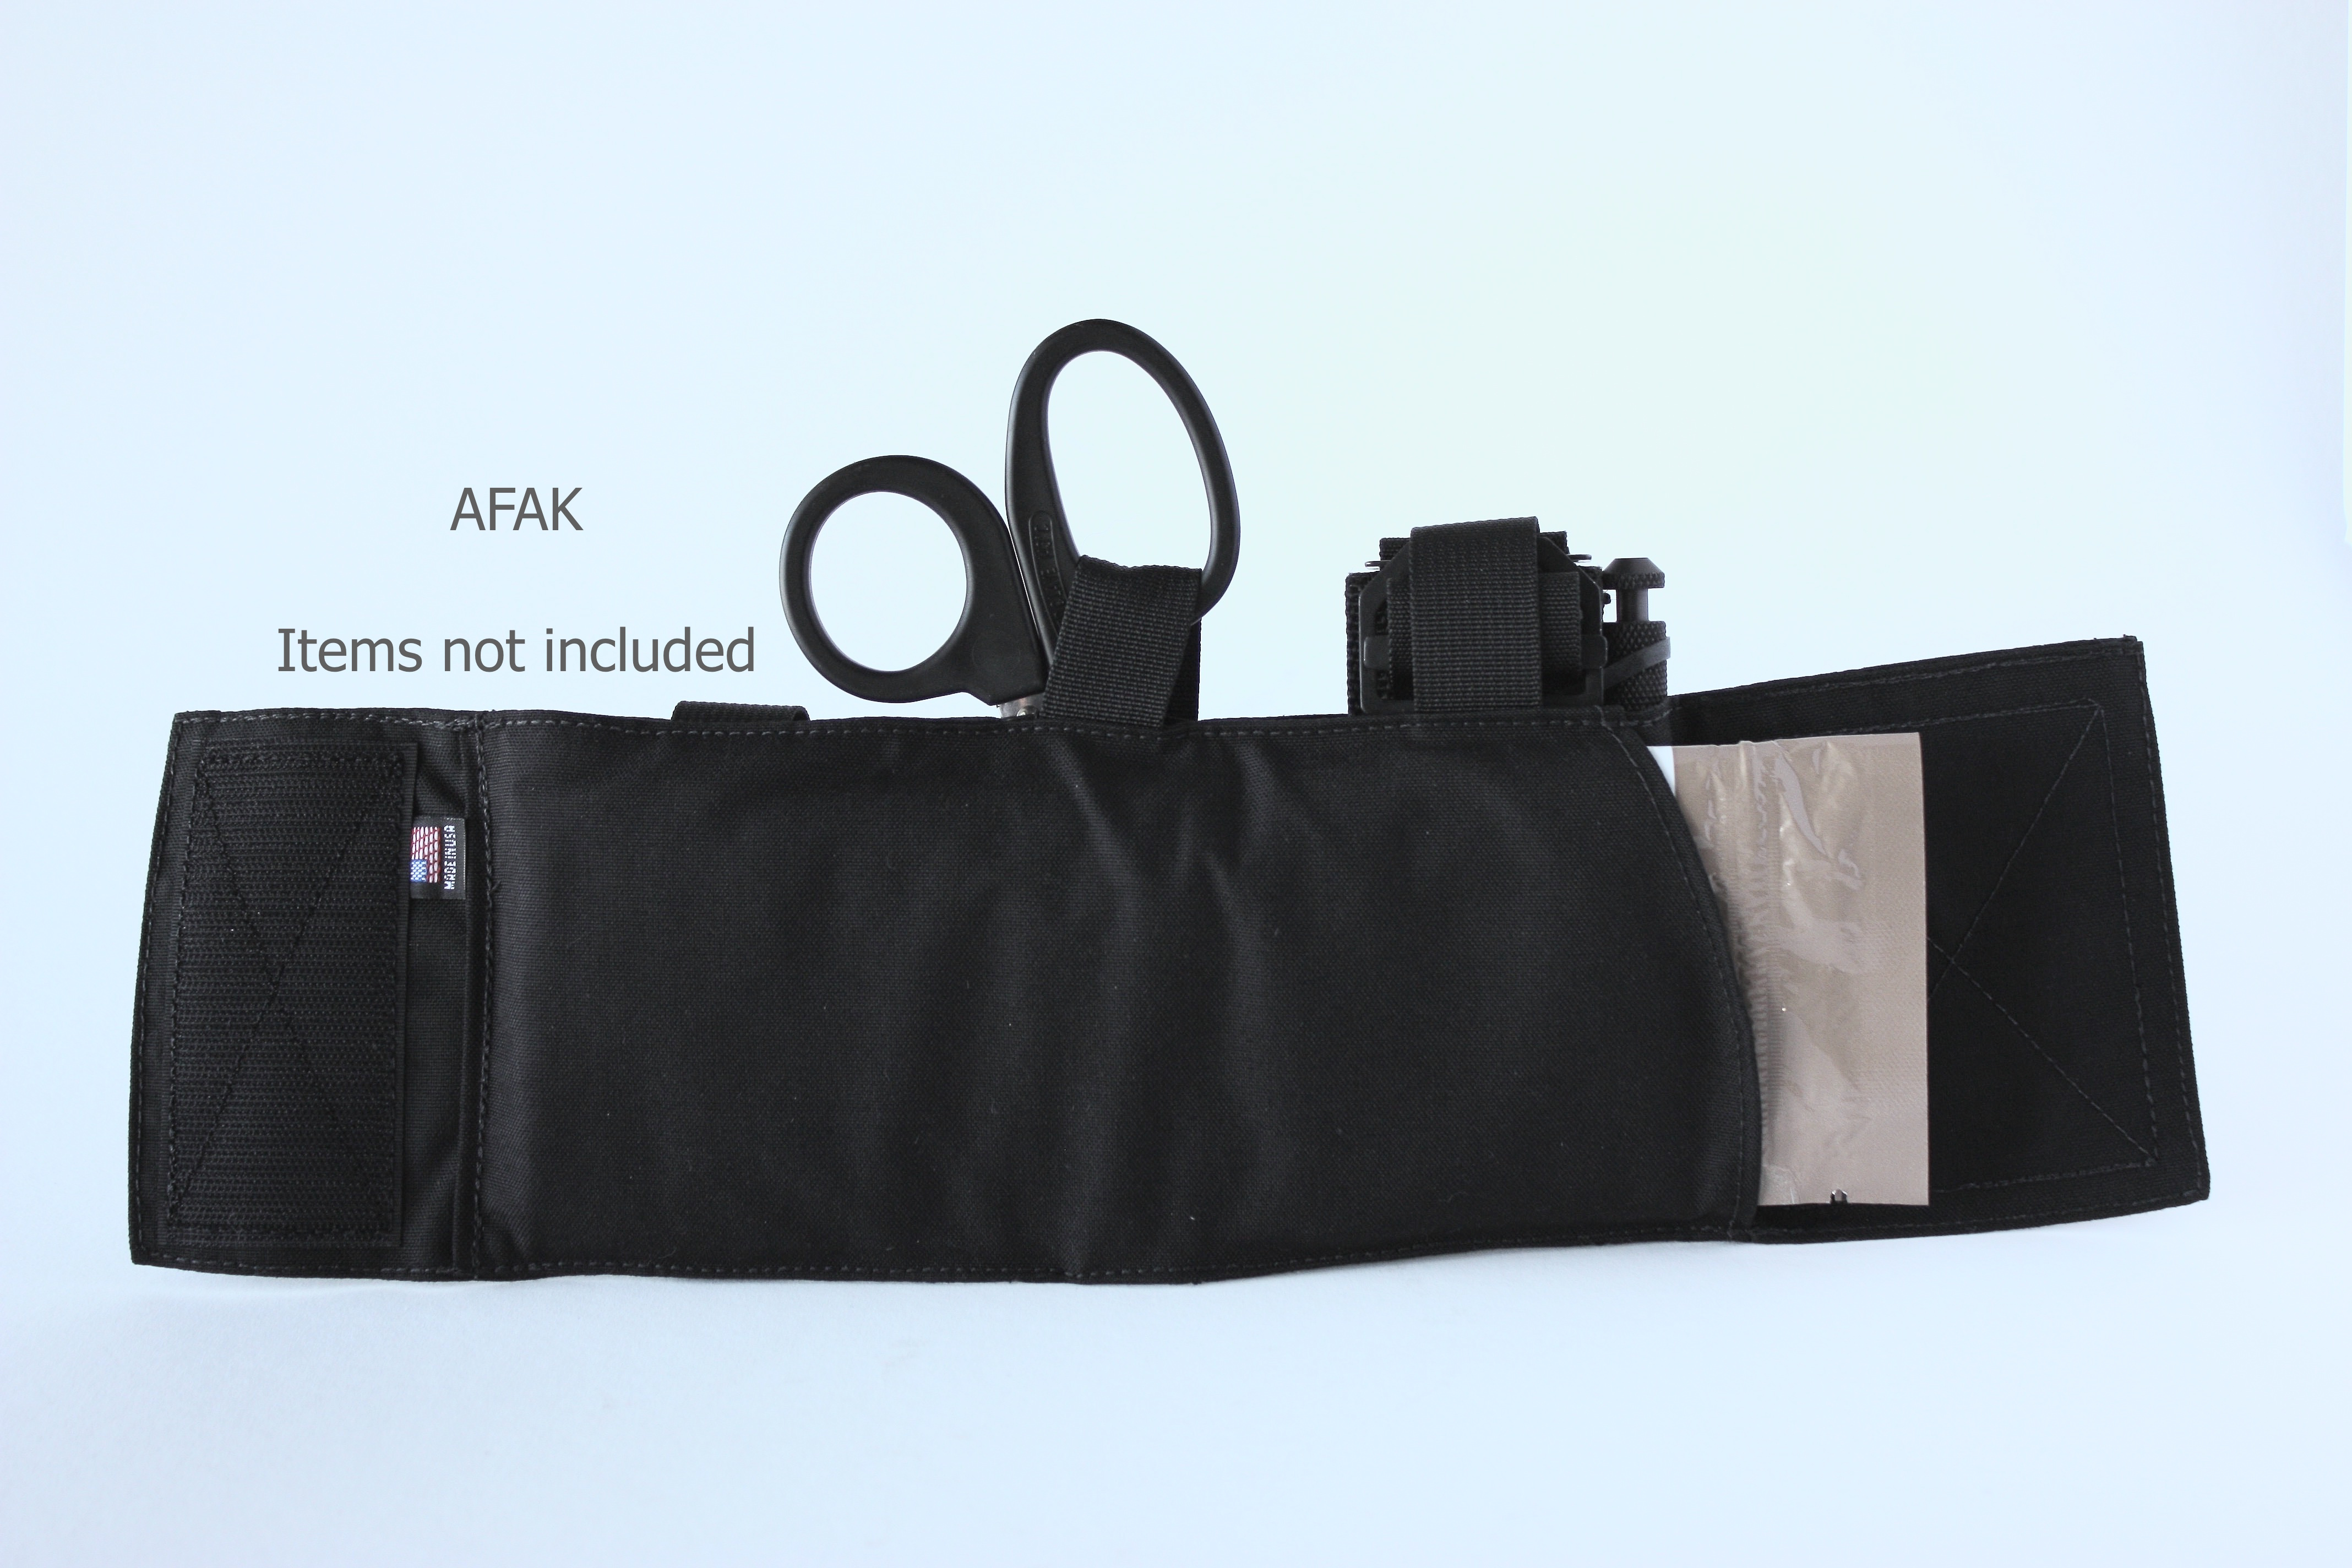 Black AFAK rear items